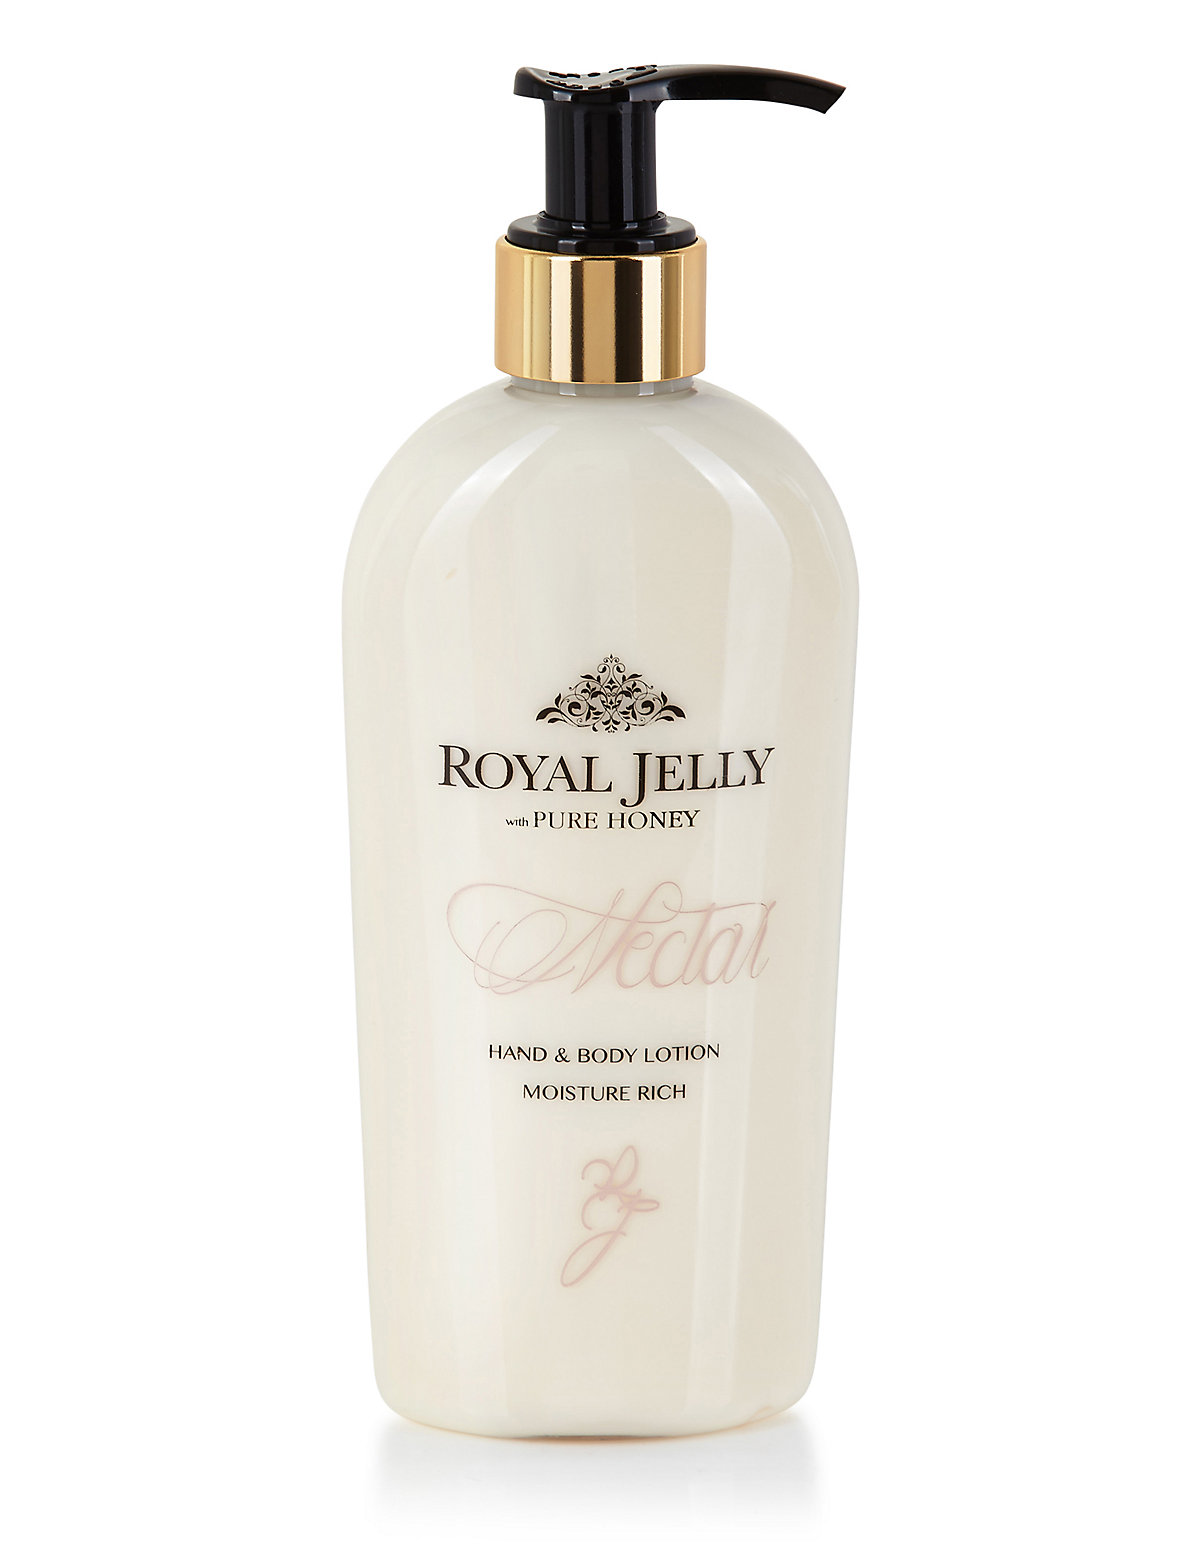 Royal Jelly Hand & Body Lotion 200ml